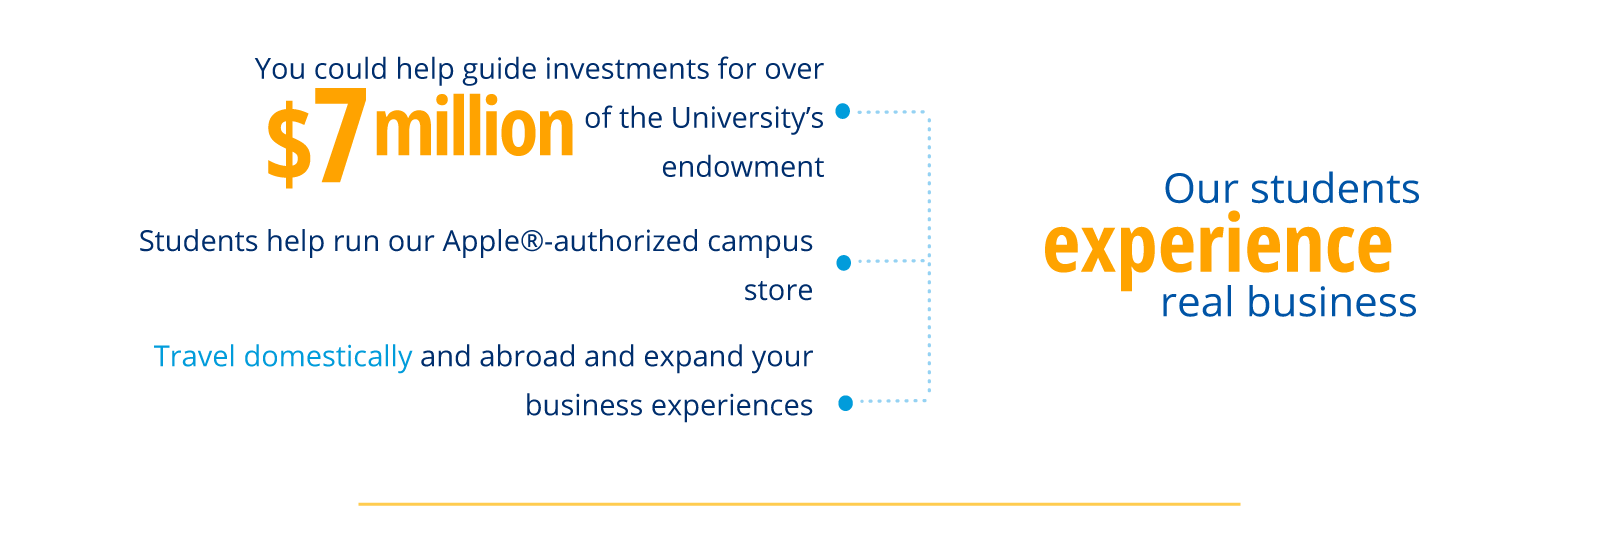 Our students experience real business. You could help guide investments for over $7 million of the University's endowment. Students help run our Apple®-authorized campus store. Travel domestically and abroad and expand your business experiences.